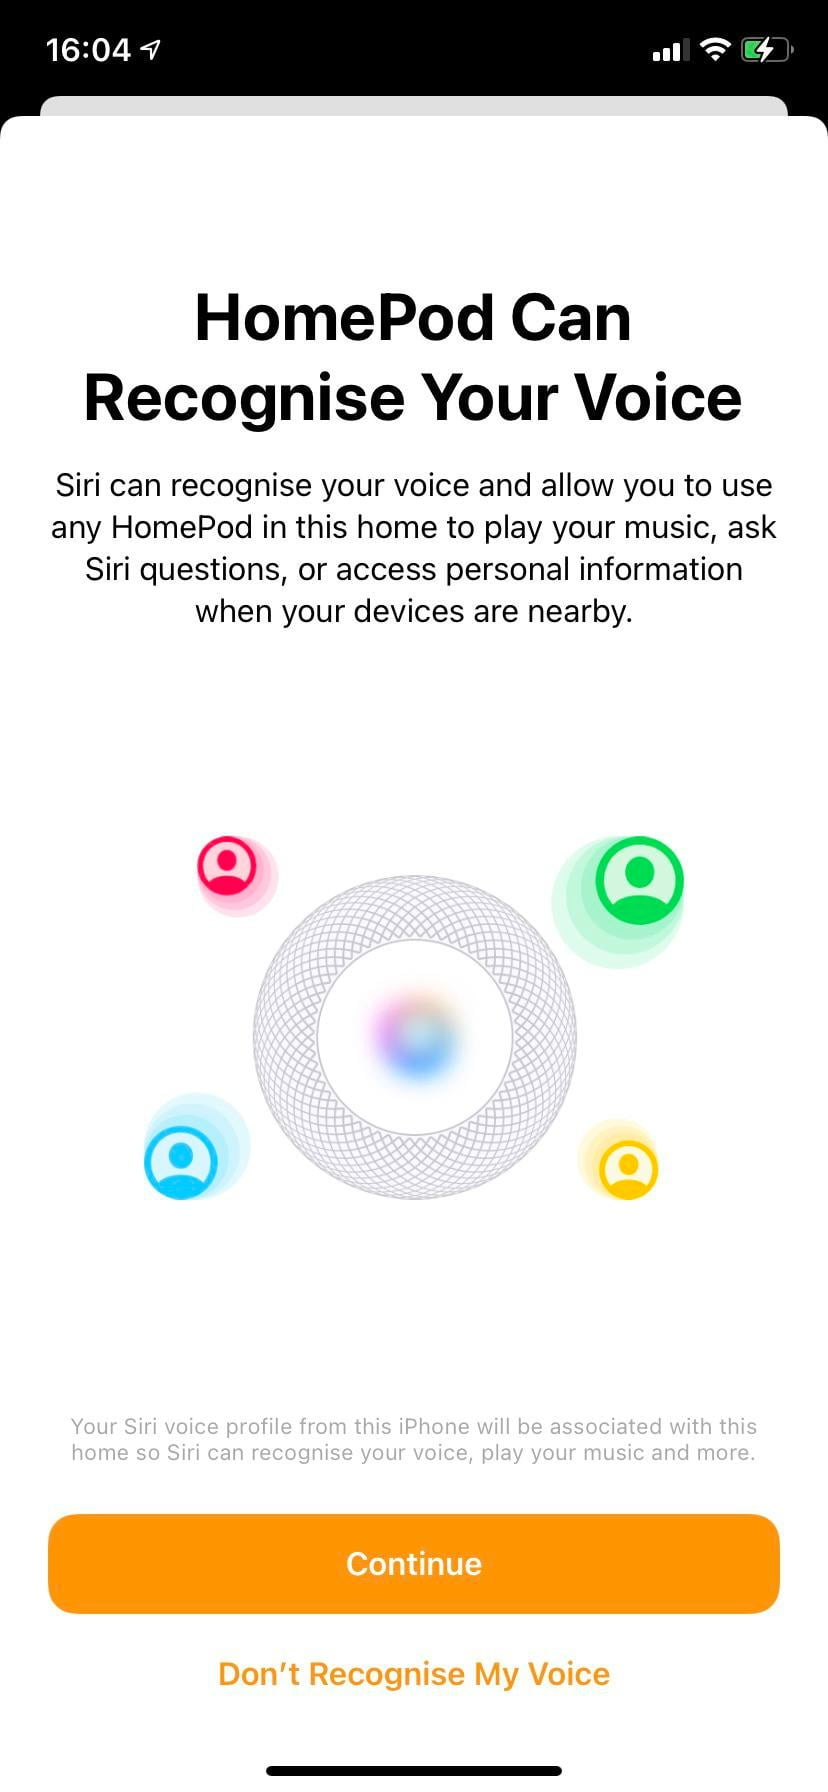 Every time I launch the Home application, it makes me learn SIRI my voice (default 5 questions).  SIRI works on HomePod, iPad and my phone, but it requires me to learn its voice every time I launch the application from home.  (Even though I've done it a hundred times).  What can I do?